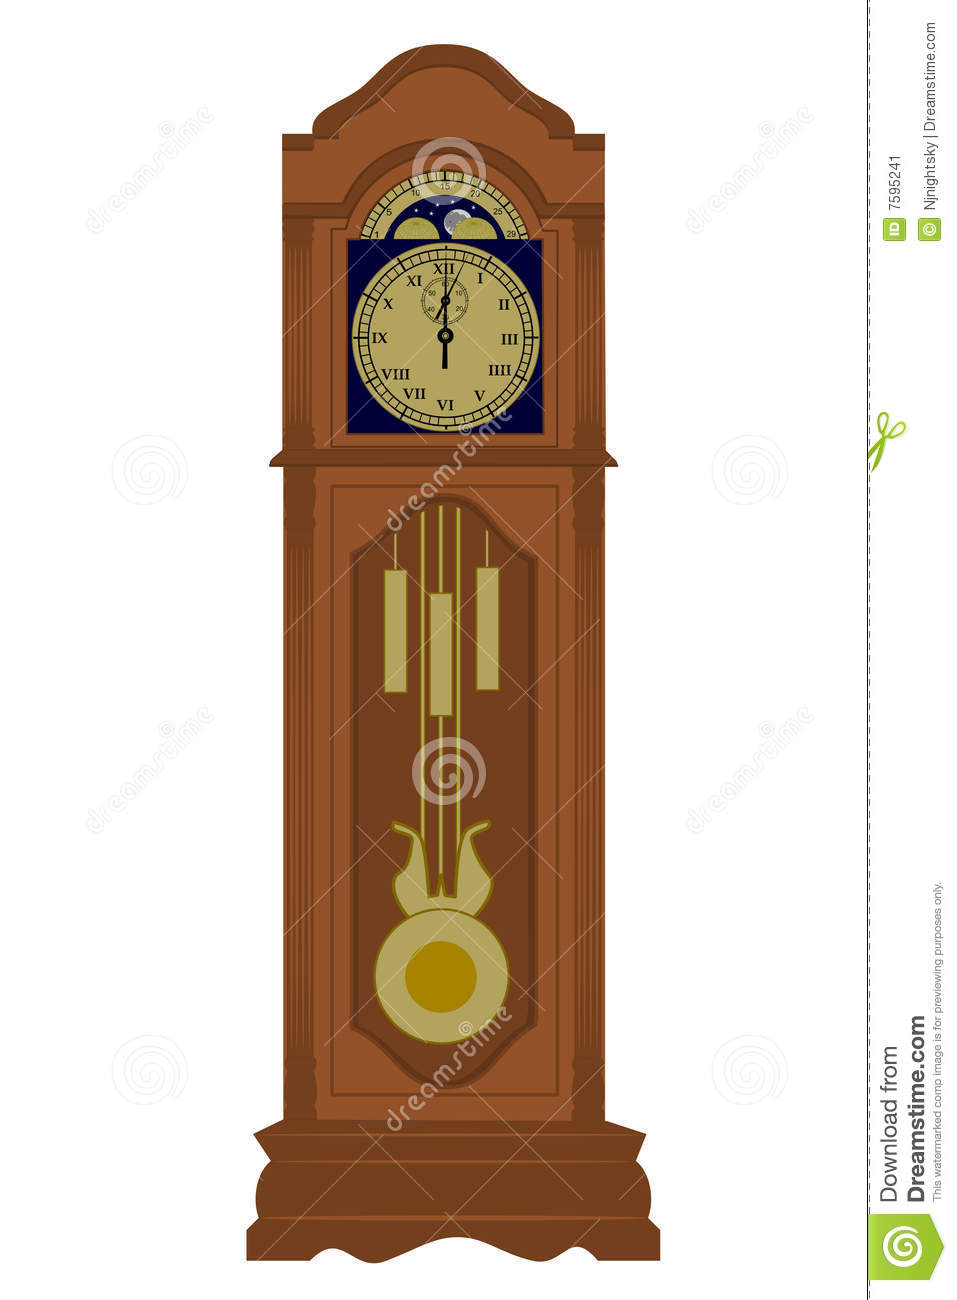 Grandfather Clock Stock Image - Image: 7595241